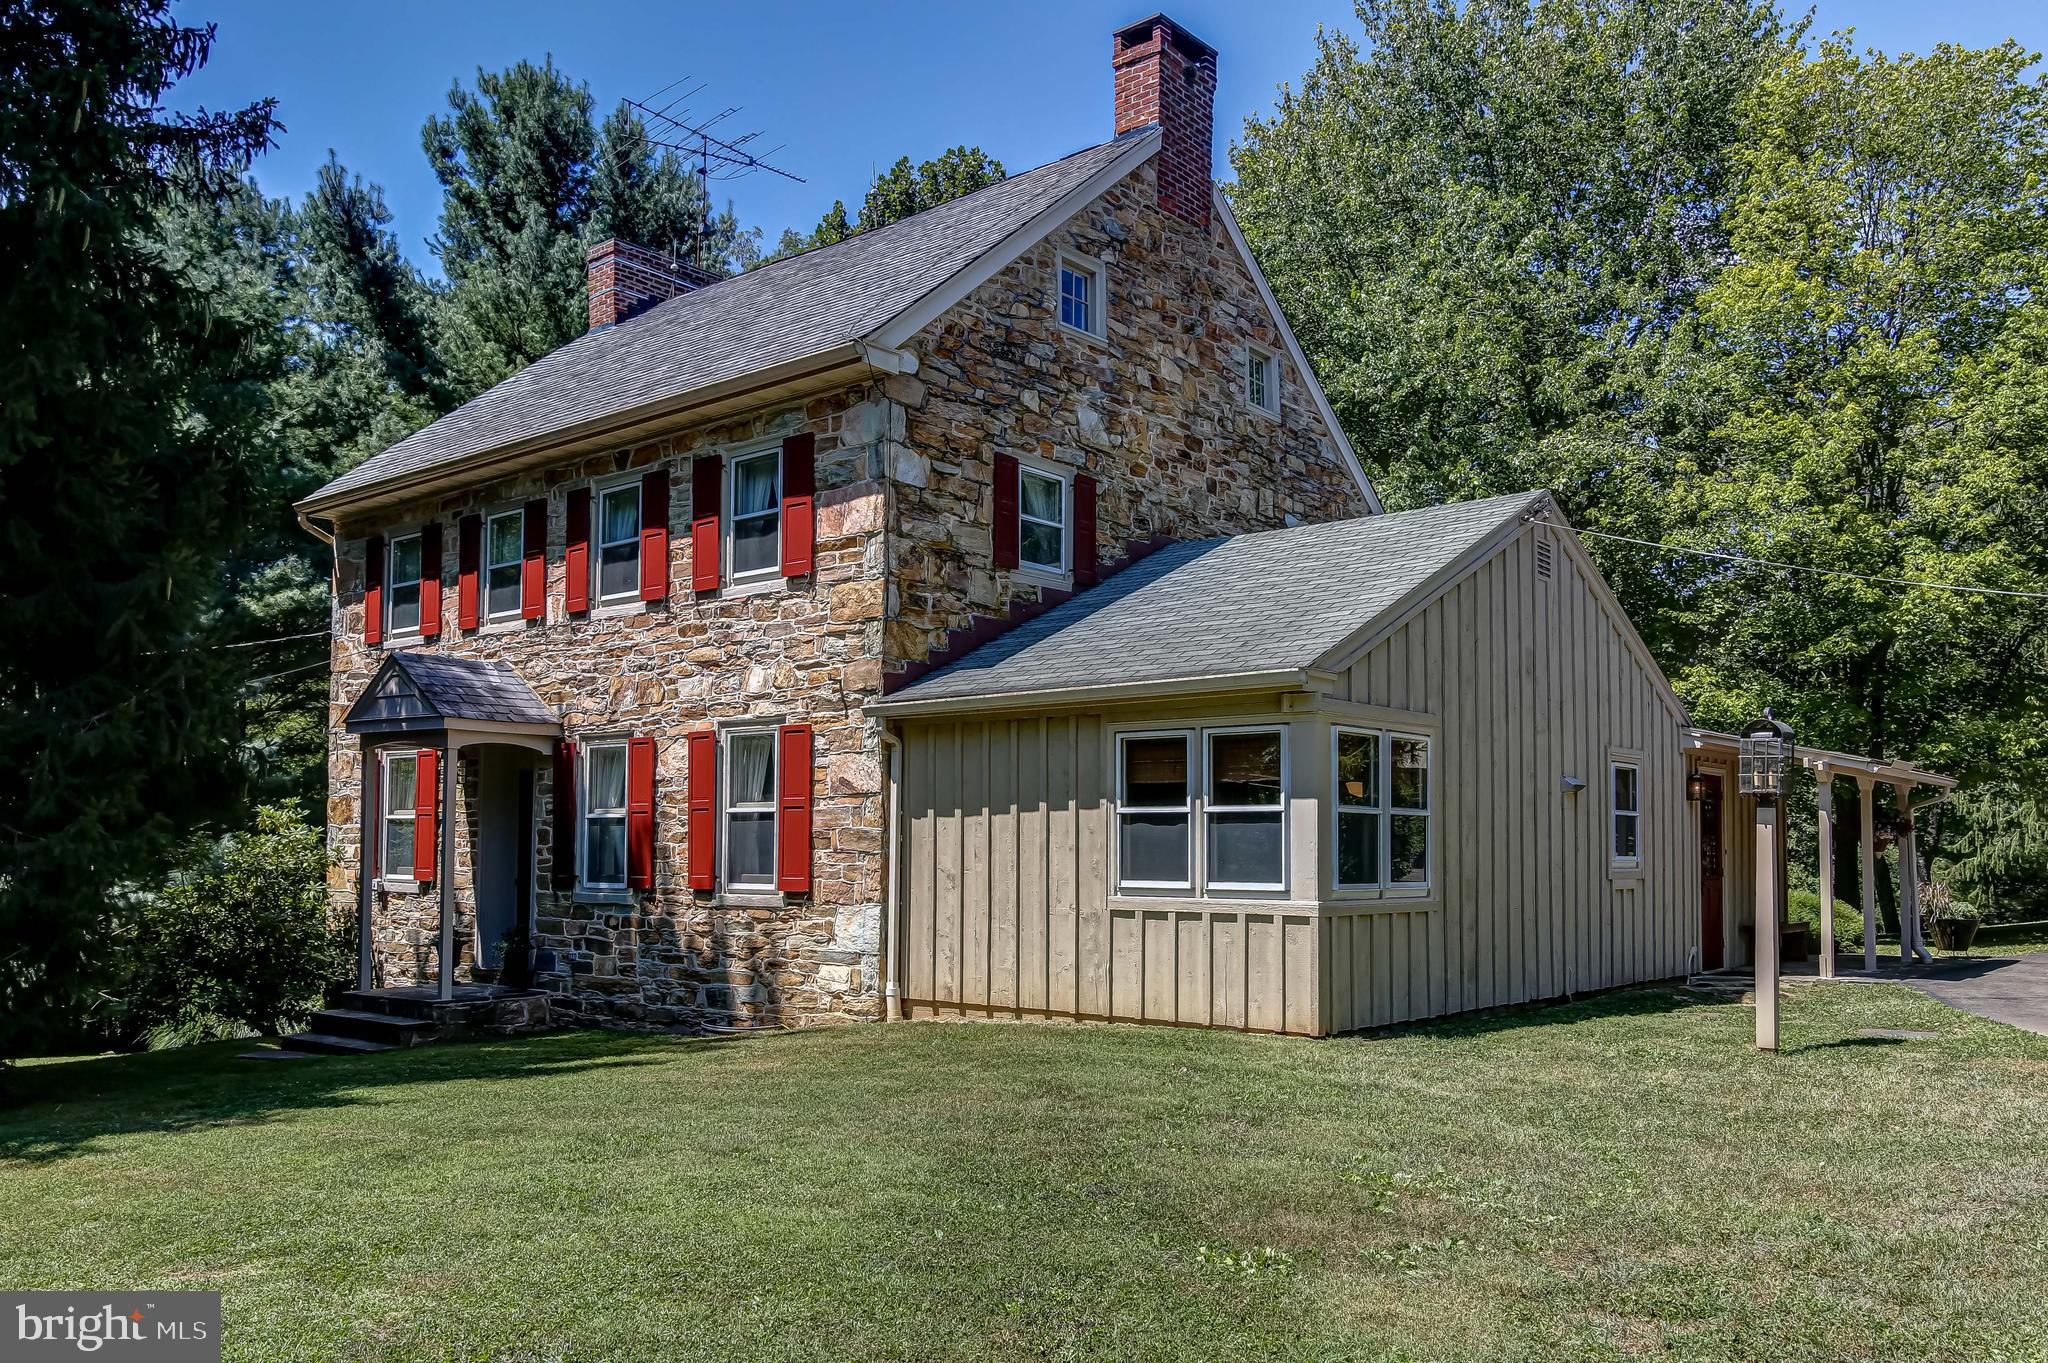 1177 PILGRIMS PATHWAY, PEACH BOTTOM, PA 17563